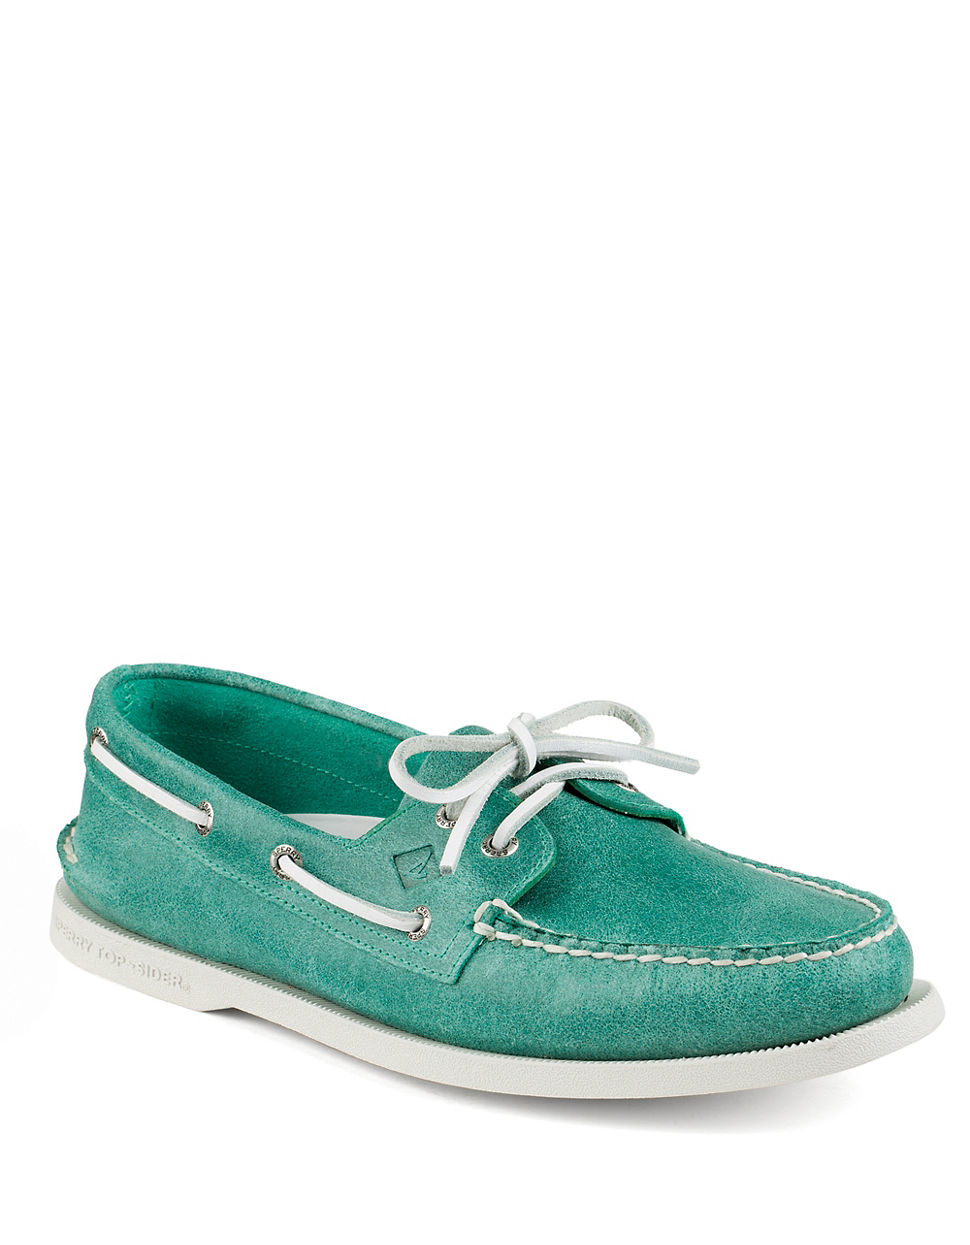 sperry top sider authentic original white cap boat shoe in